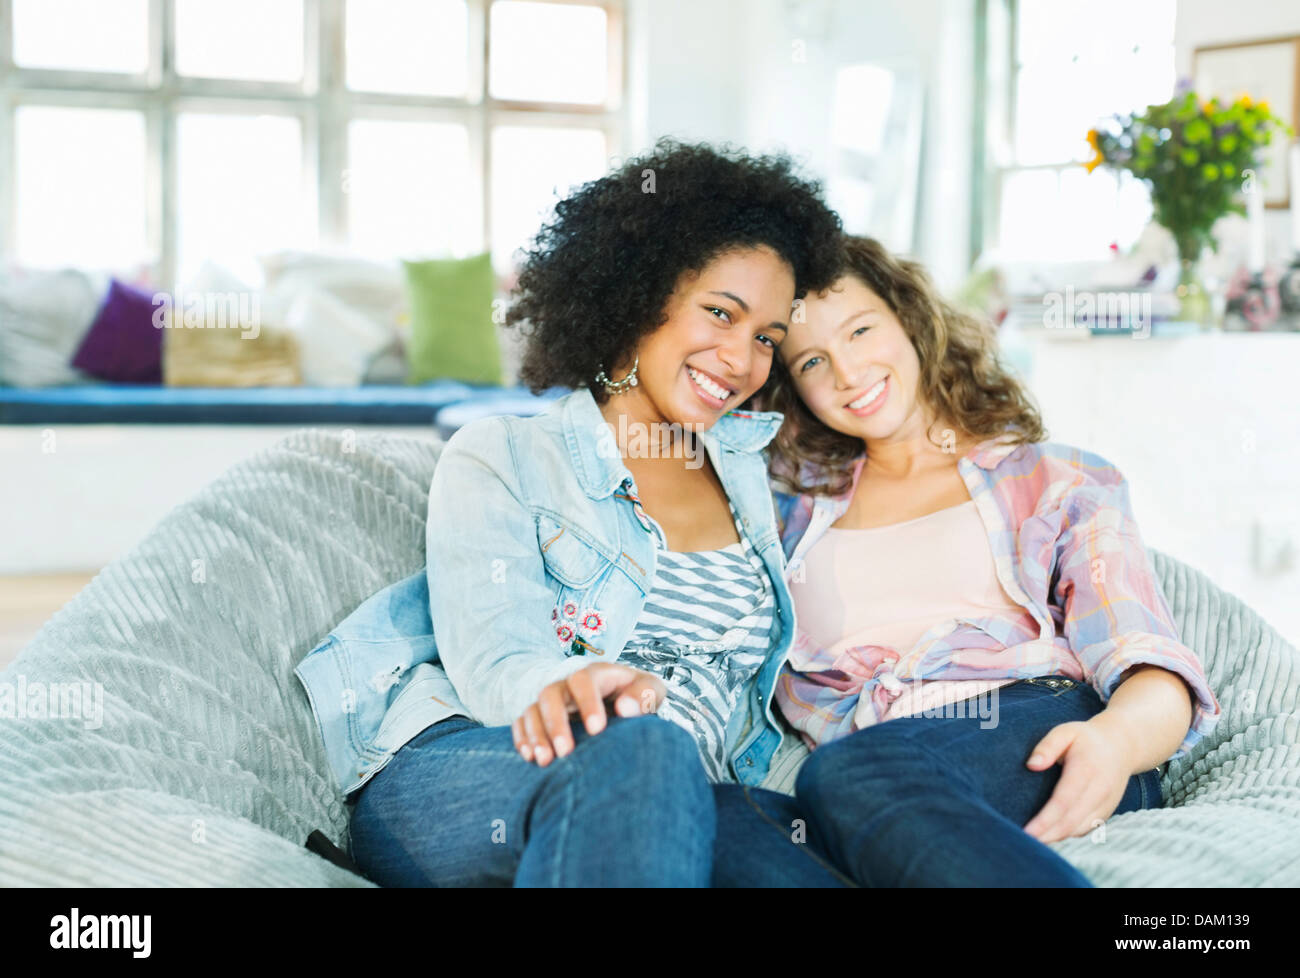 Women sitting in beanbag chair together - Stock Image